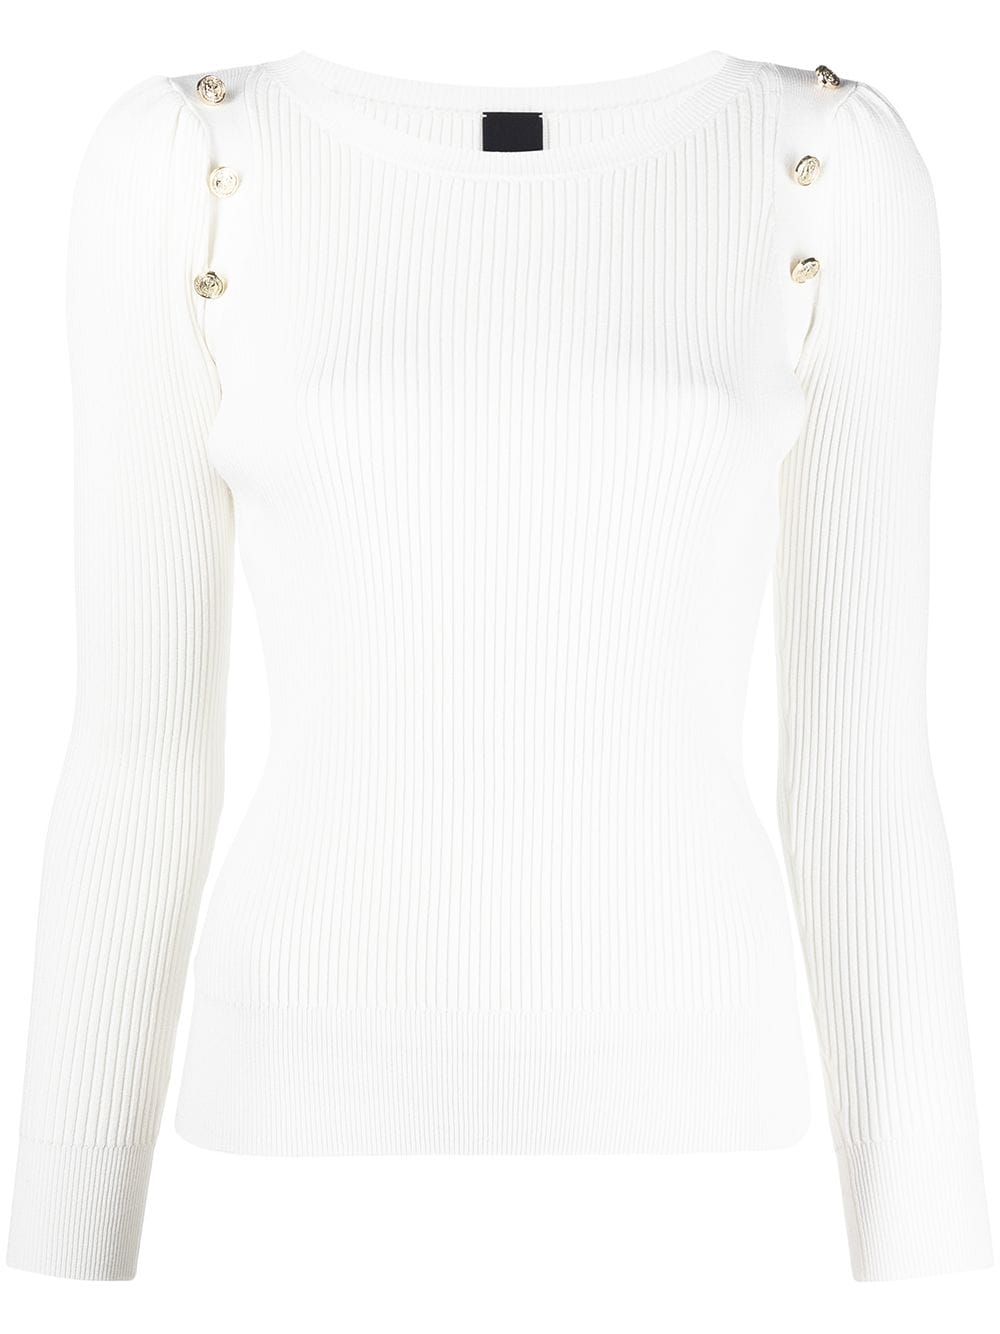 Picture of Pinko | Playmaker Knitwear Viscosa Crepe